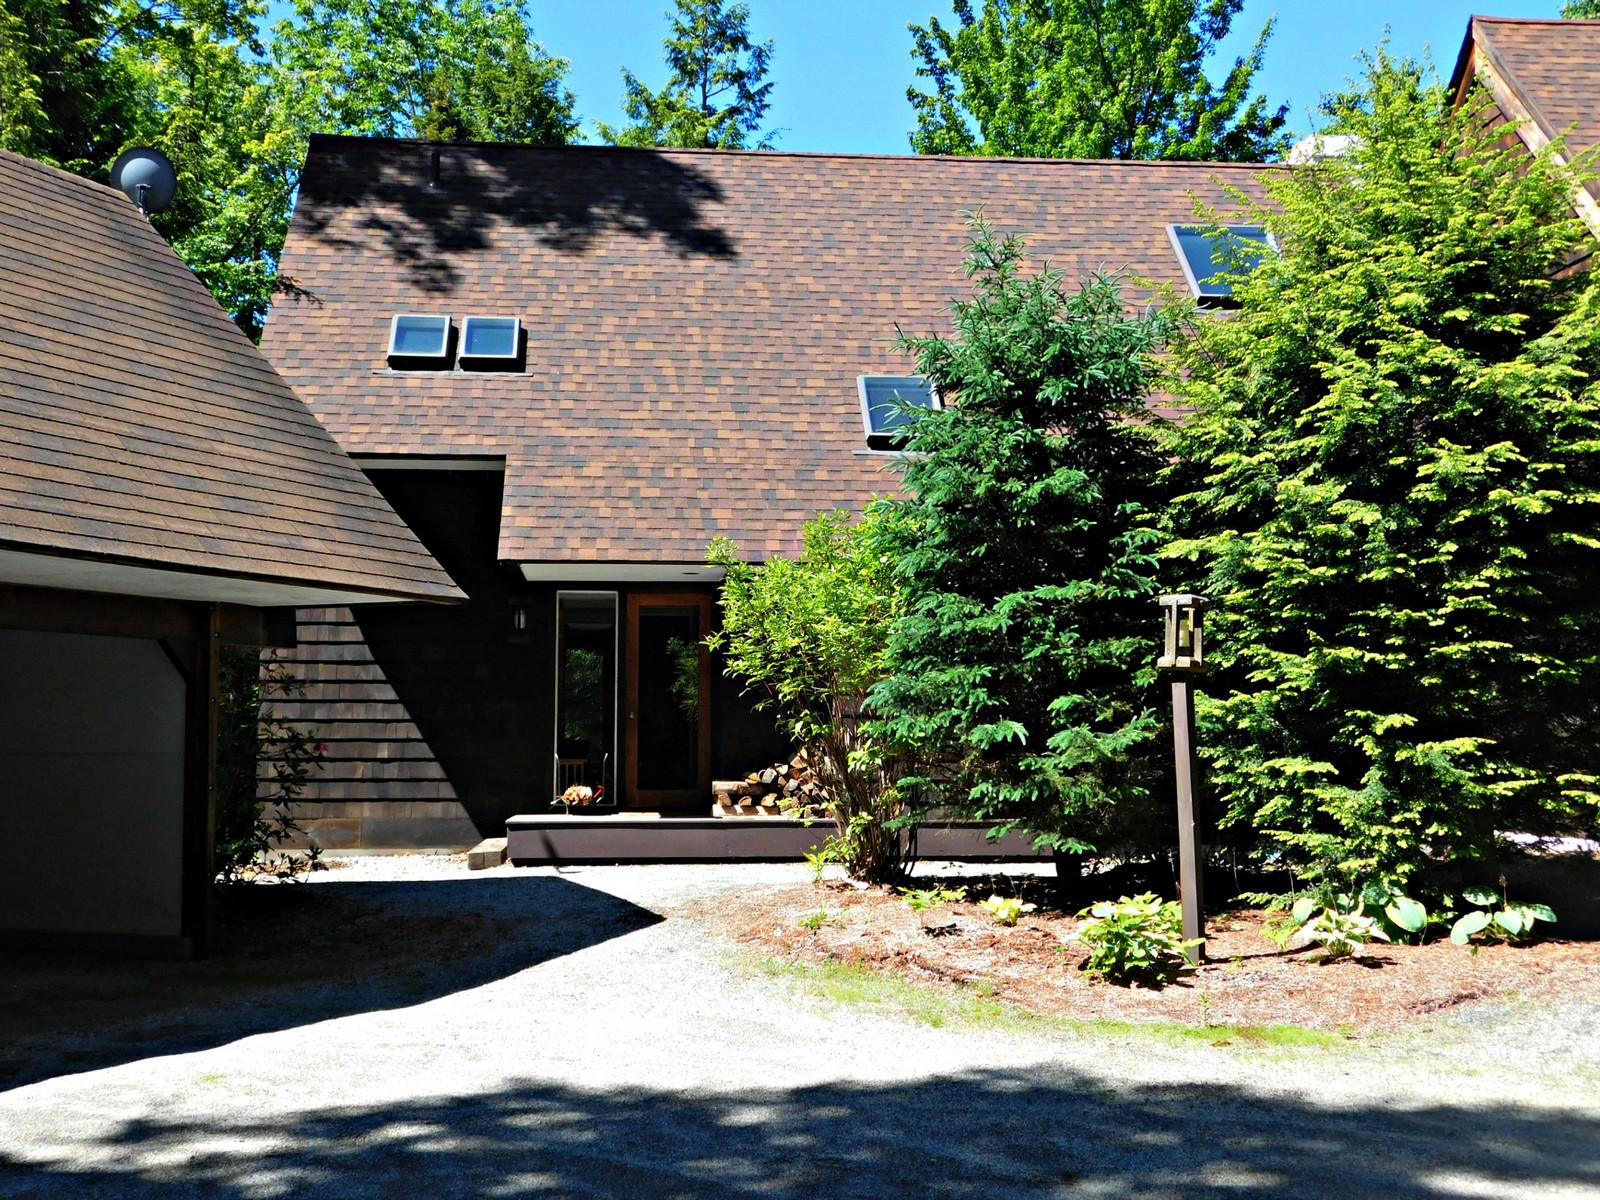 Condominium for Sale at 82 Pond View 82, Winhall 82 Pond Vw 82 Winhall, Vermont, 05340 United States